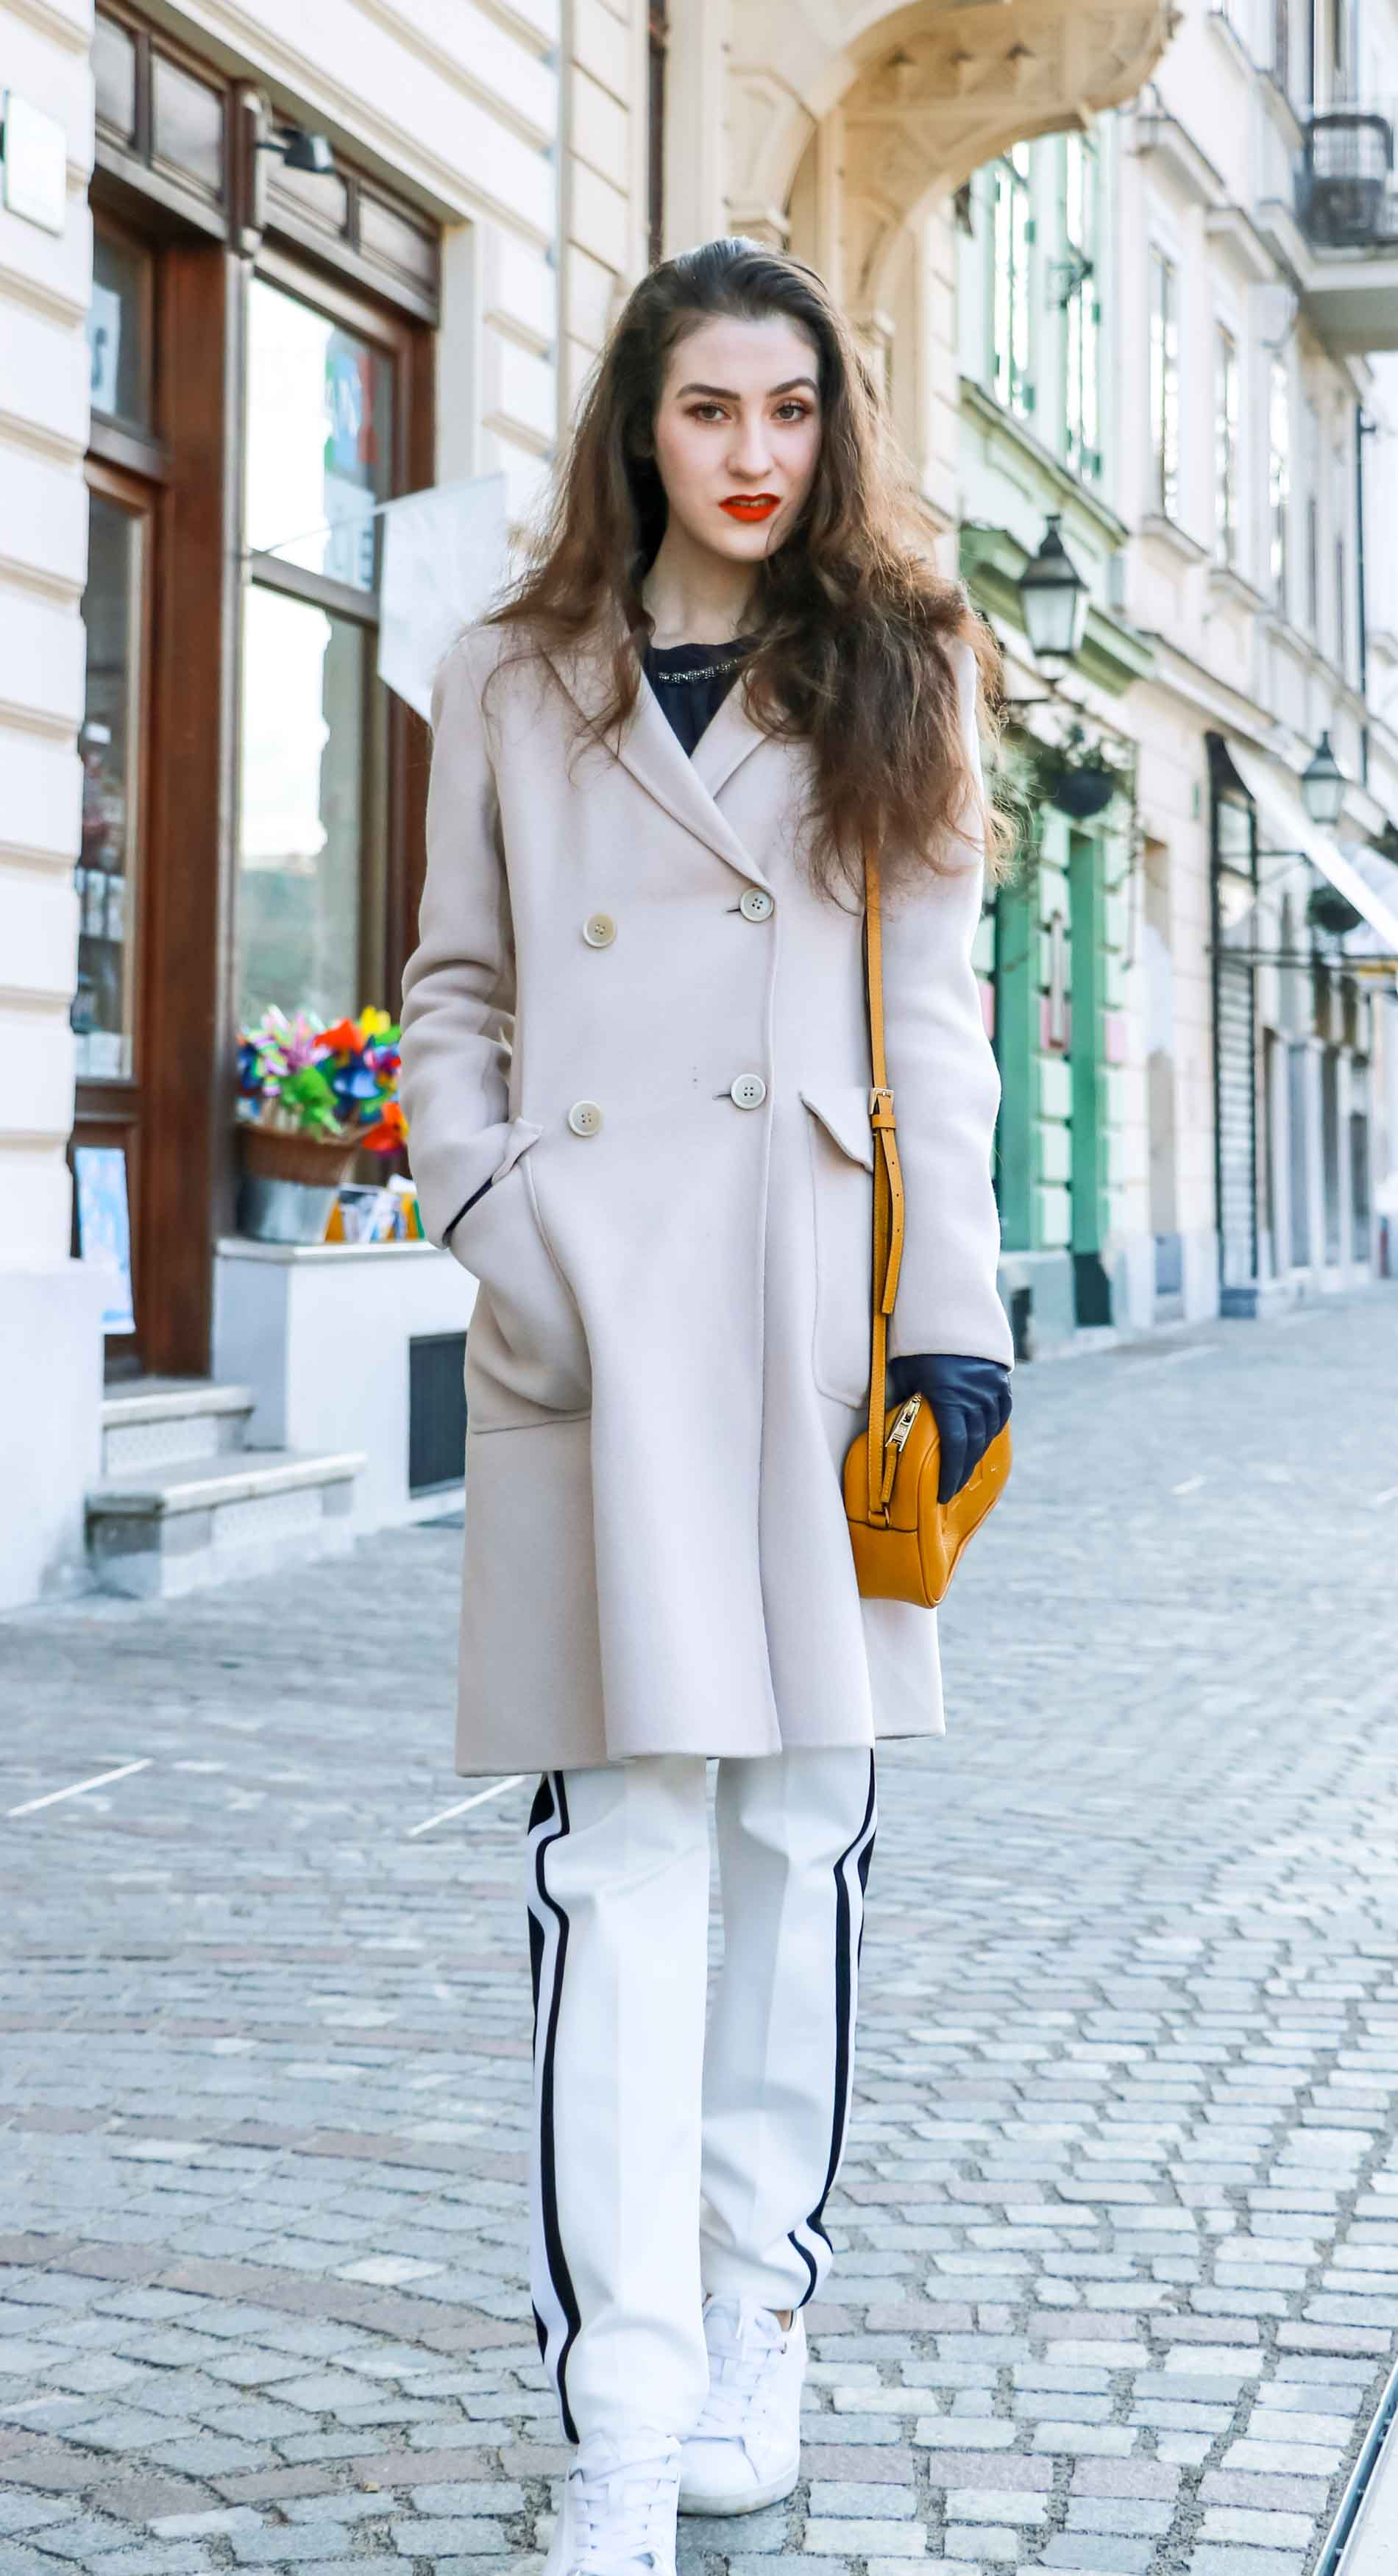 Fashion Blogger Veronika Lipar of Brunette from Wall Street dressed in white track pants with black side stripe from Escada, black silk blouse, off-white pastel double breasted coat from Weekend Max Mara, white leather sneakers from Diesel, yellow shoulder bag from Escada while walking down the street in Ljubljana